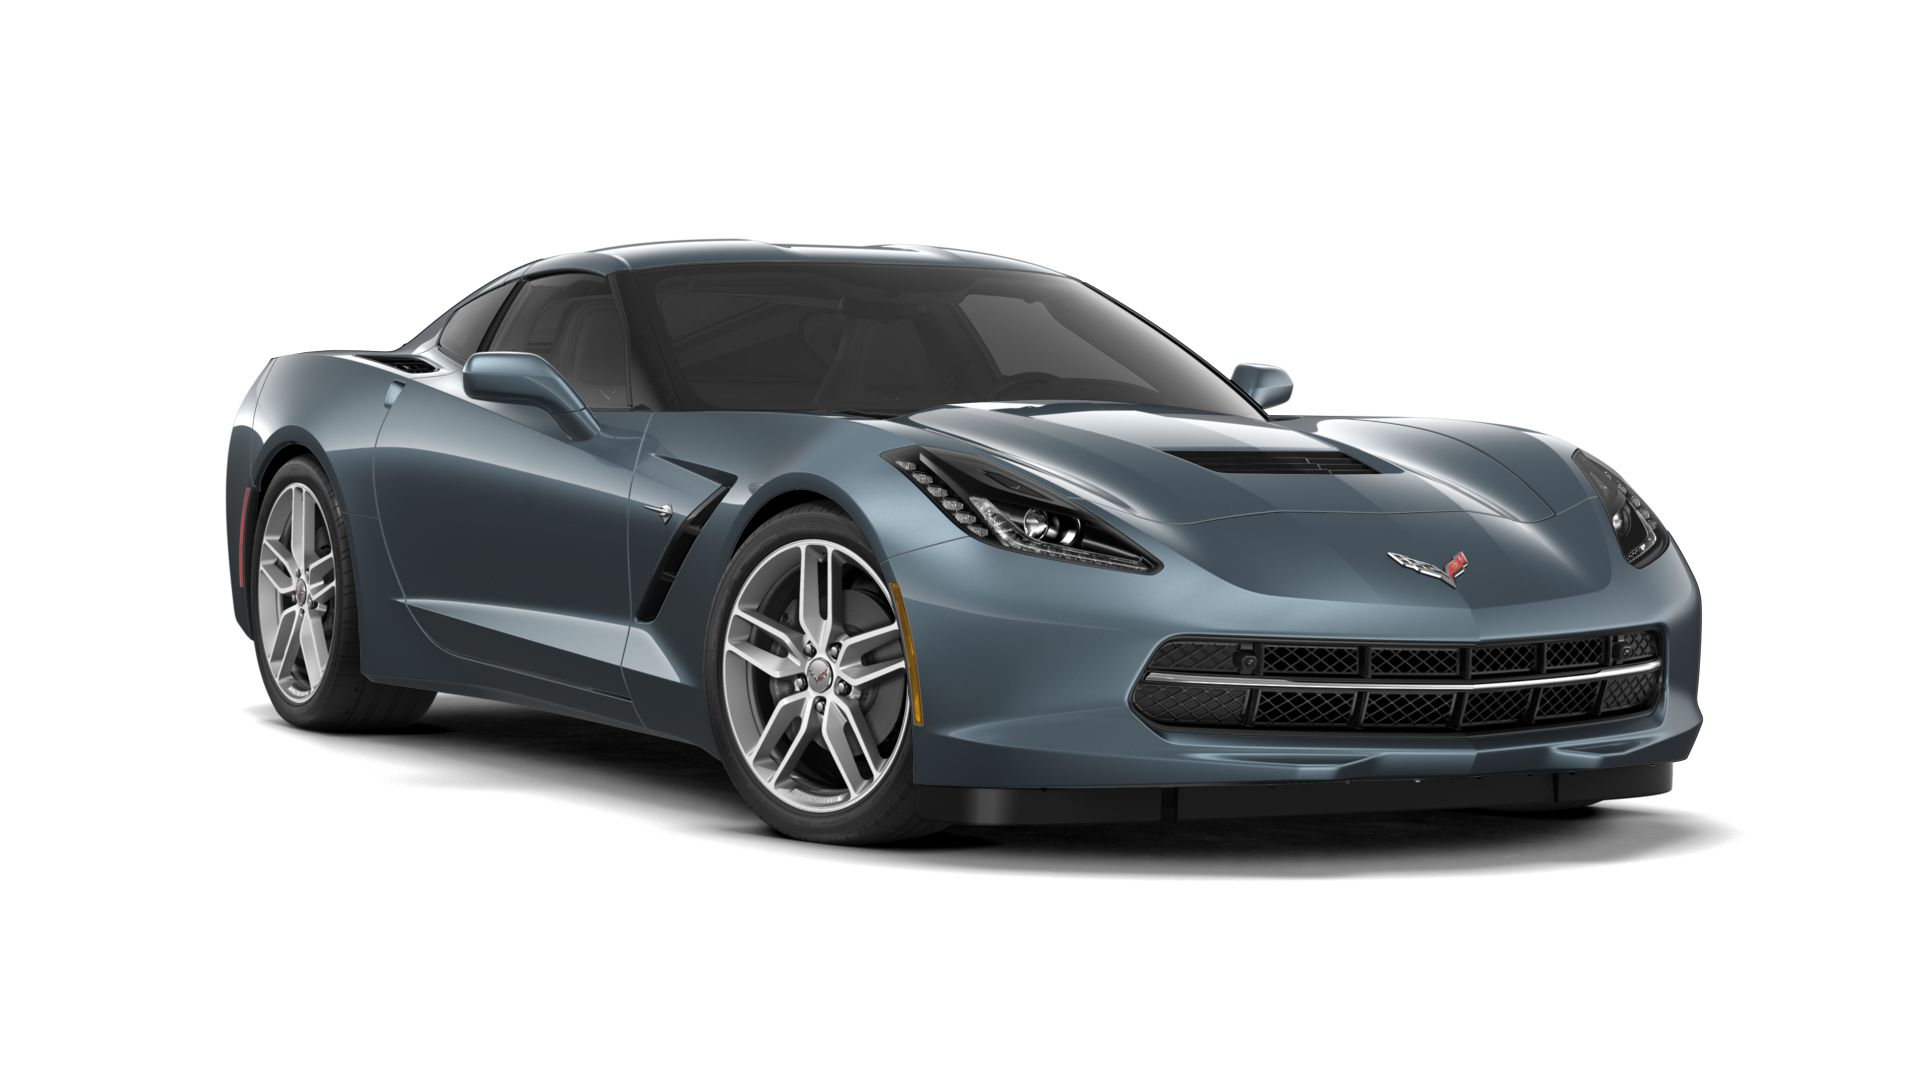 2019 Chevy Corvette 3LT